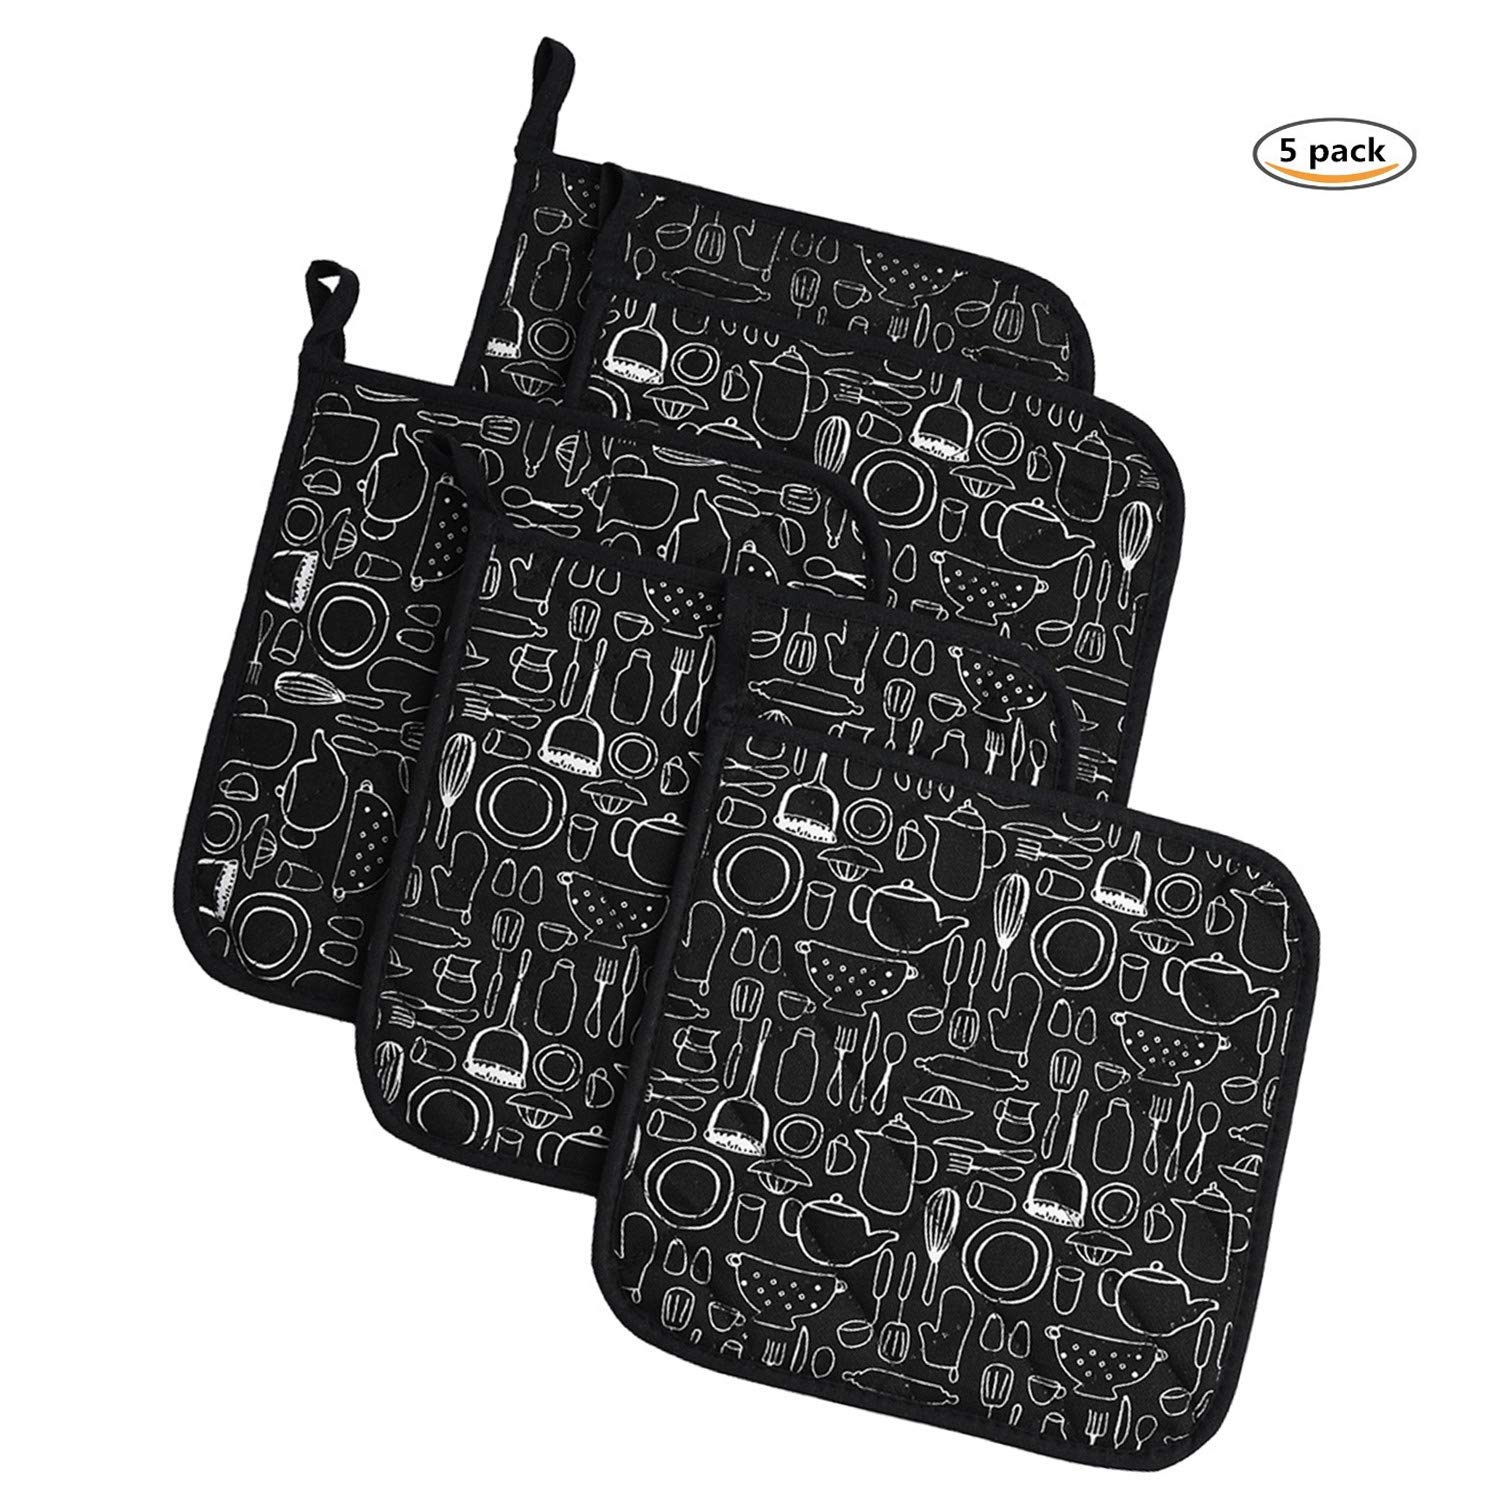 Jennice House Potholders Trivets Kitchen Heat Resistant Cotton Coasters Hot Pads Pot Holders Set of 5 Everyday Cooking Baking 8 x 8Inch (Black)